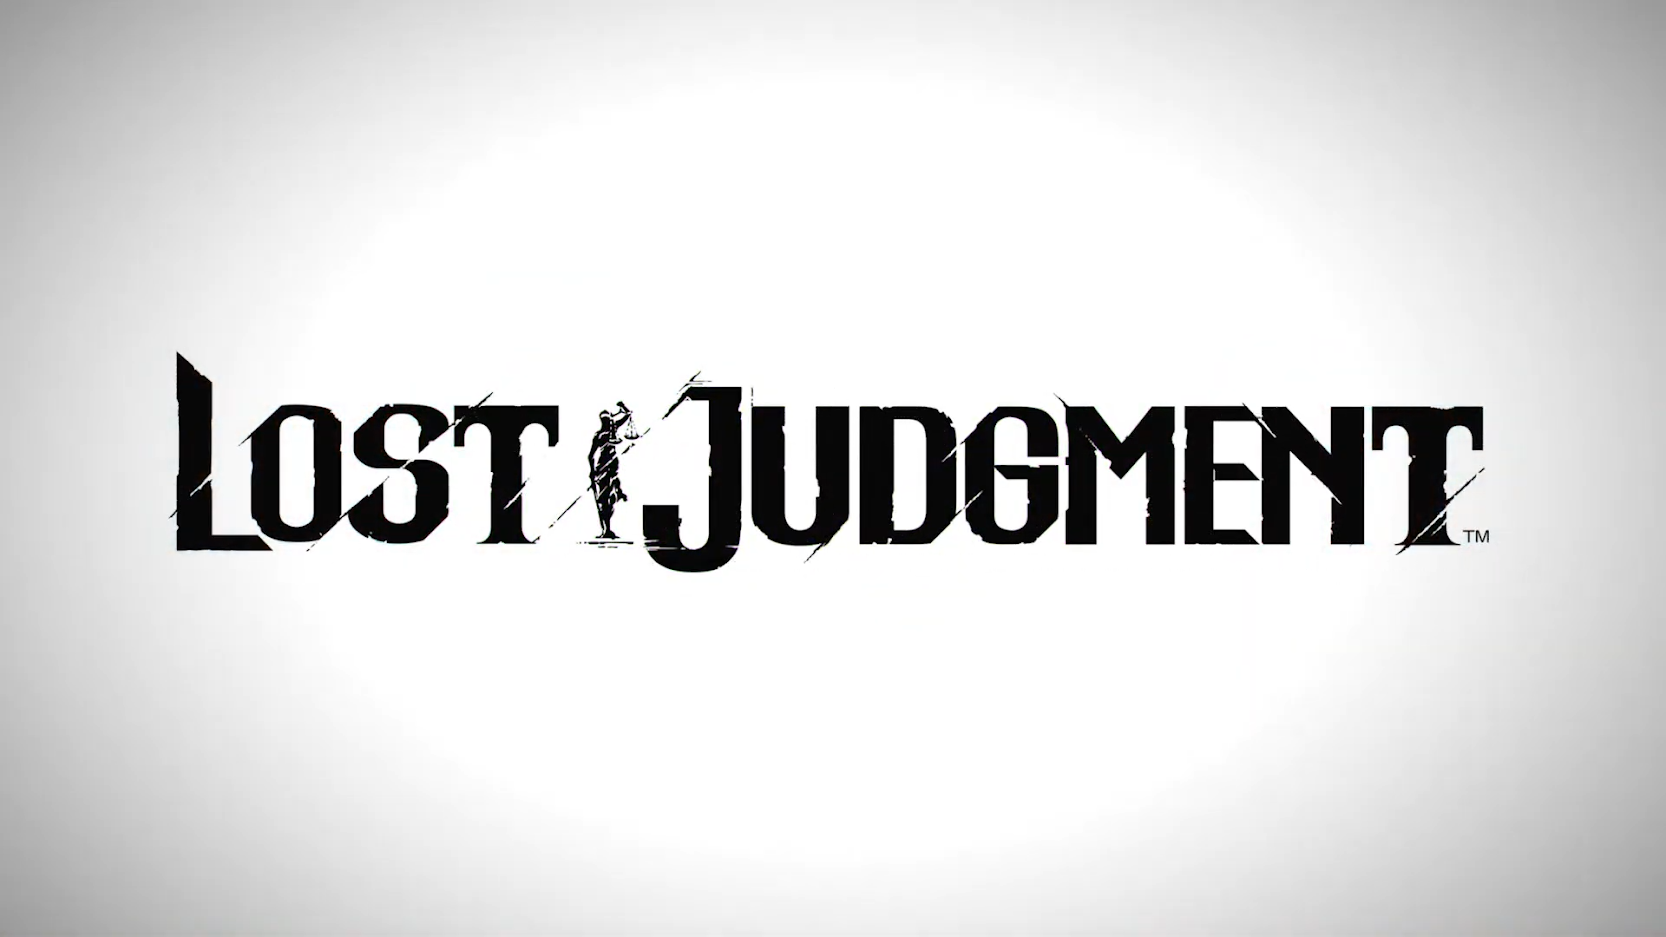 Legal suspense is about to get redefined as Yakuza spin-off Lost Judgement gets announced for a worldwide release later this year on September 24th 2021